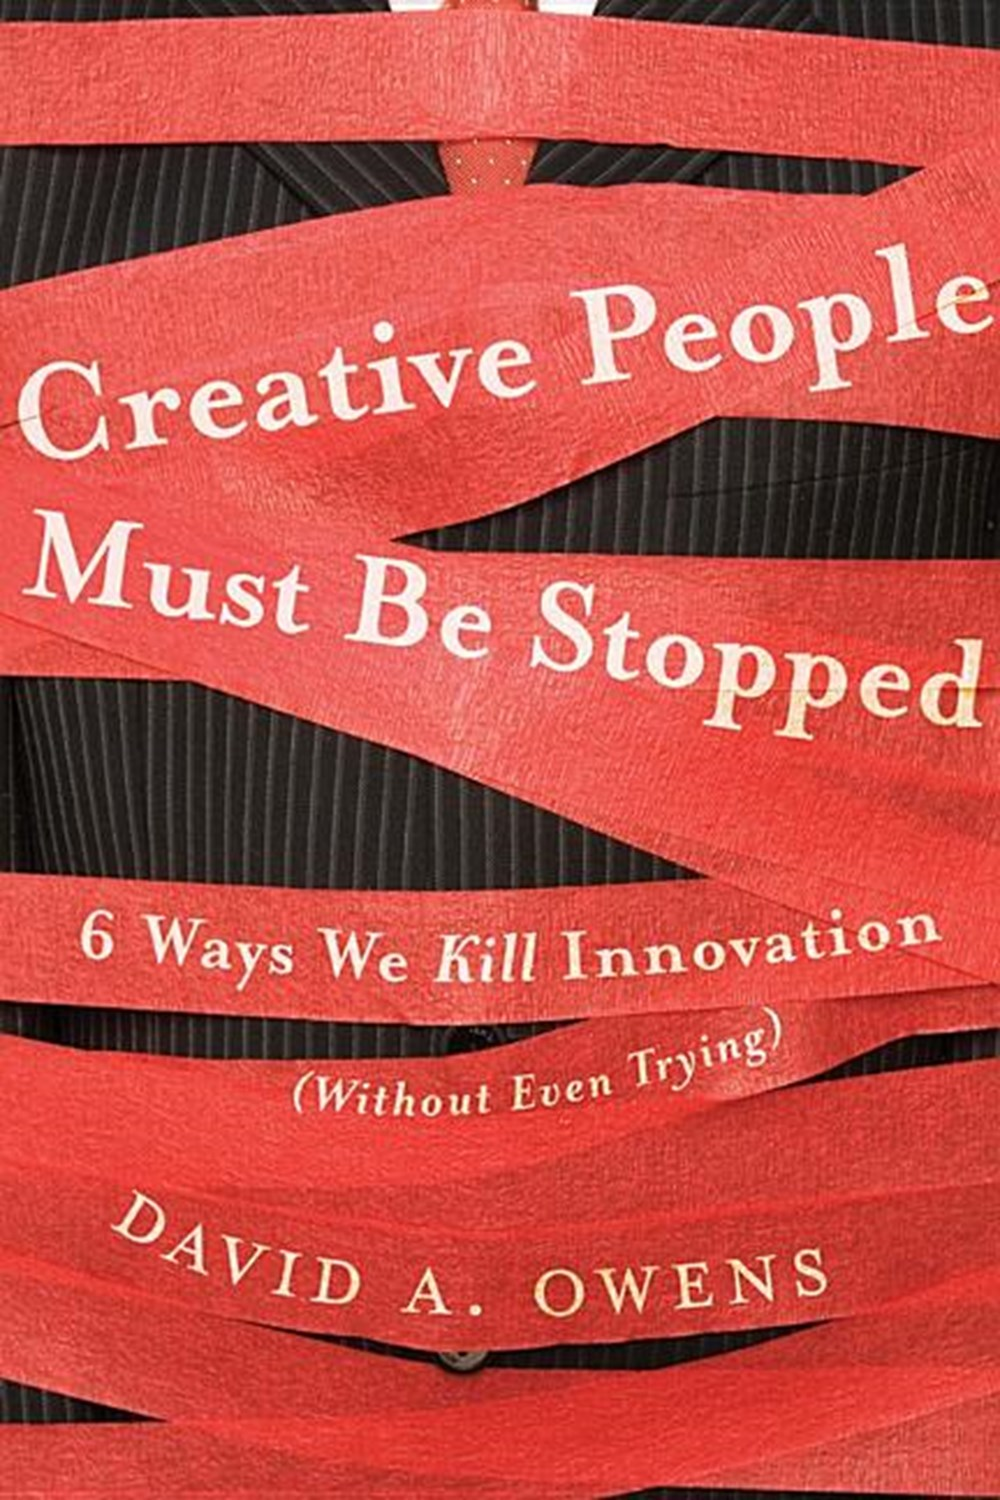 Creative People Must Be Stopped 6 Ways We Kill Innovation (Without Even Trying)